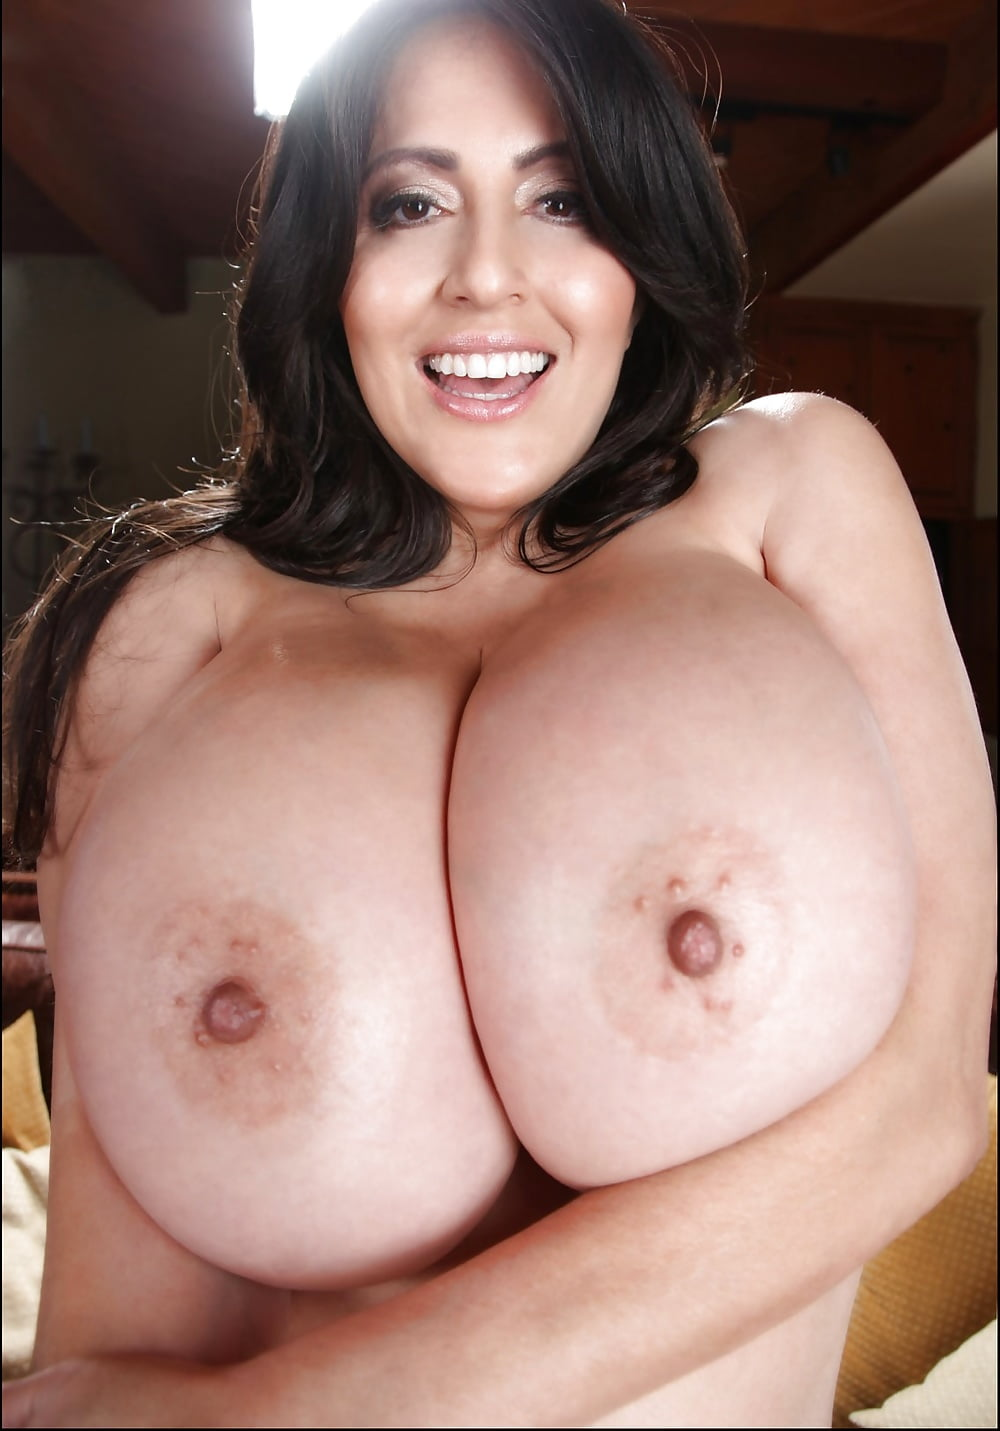 Massive natural tits pornhub-2491